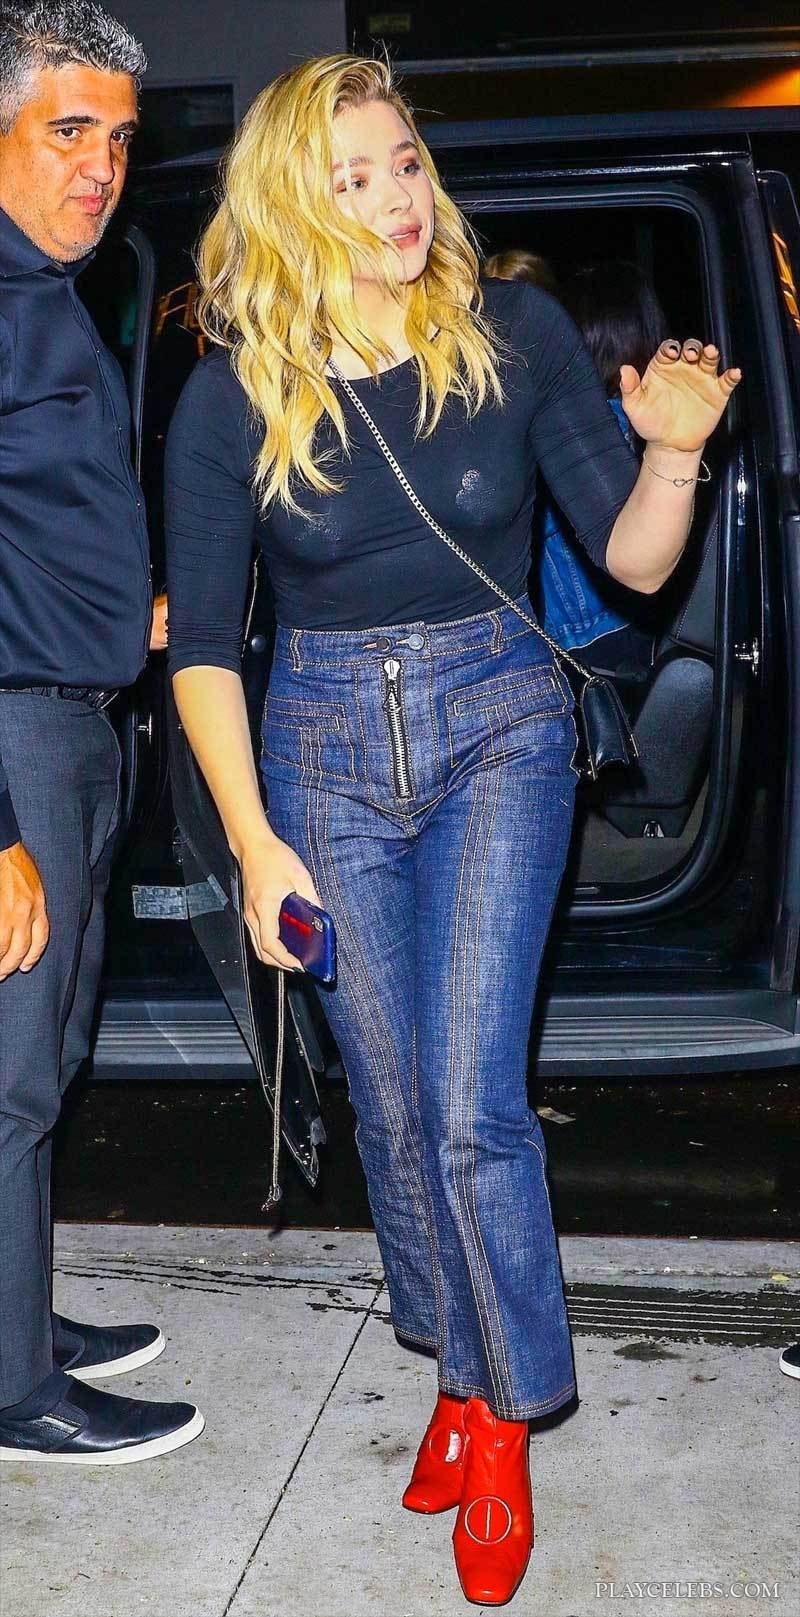 Chloe Grace Moretz Pasties In See Through And Upskirt Moment